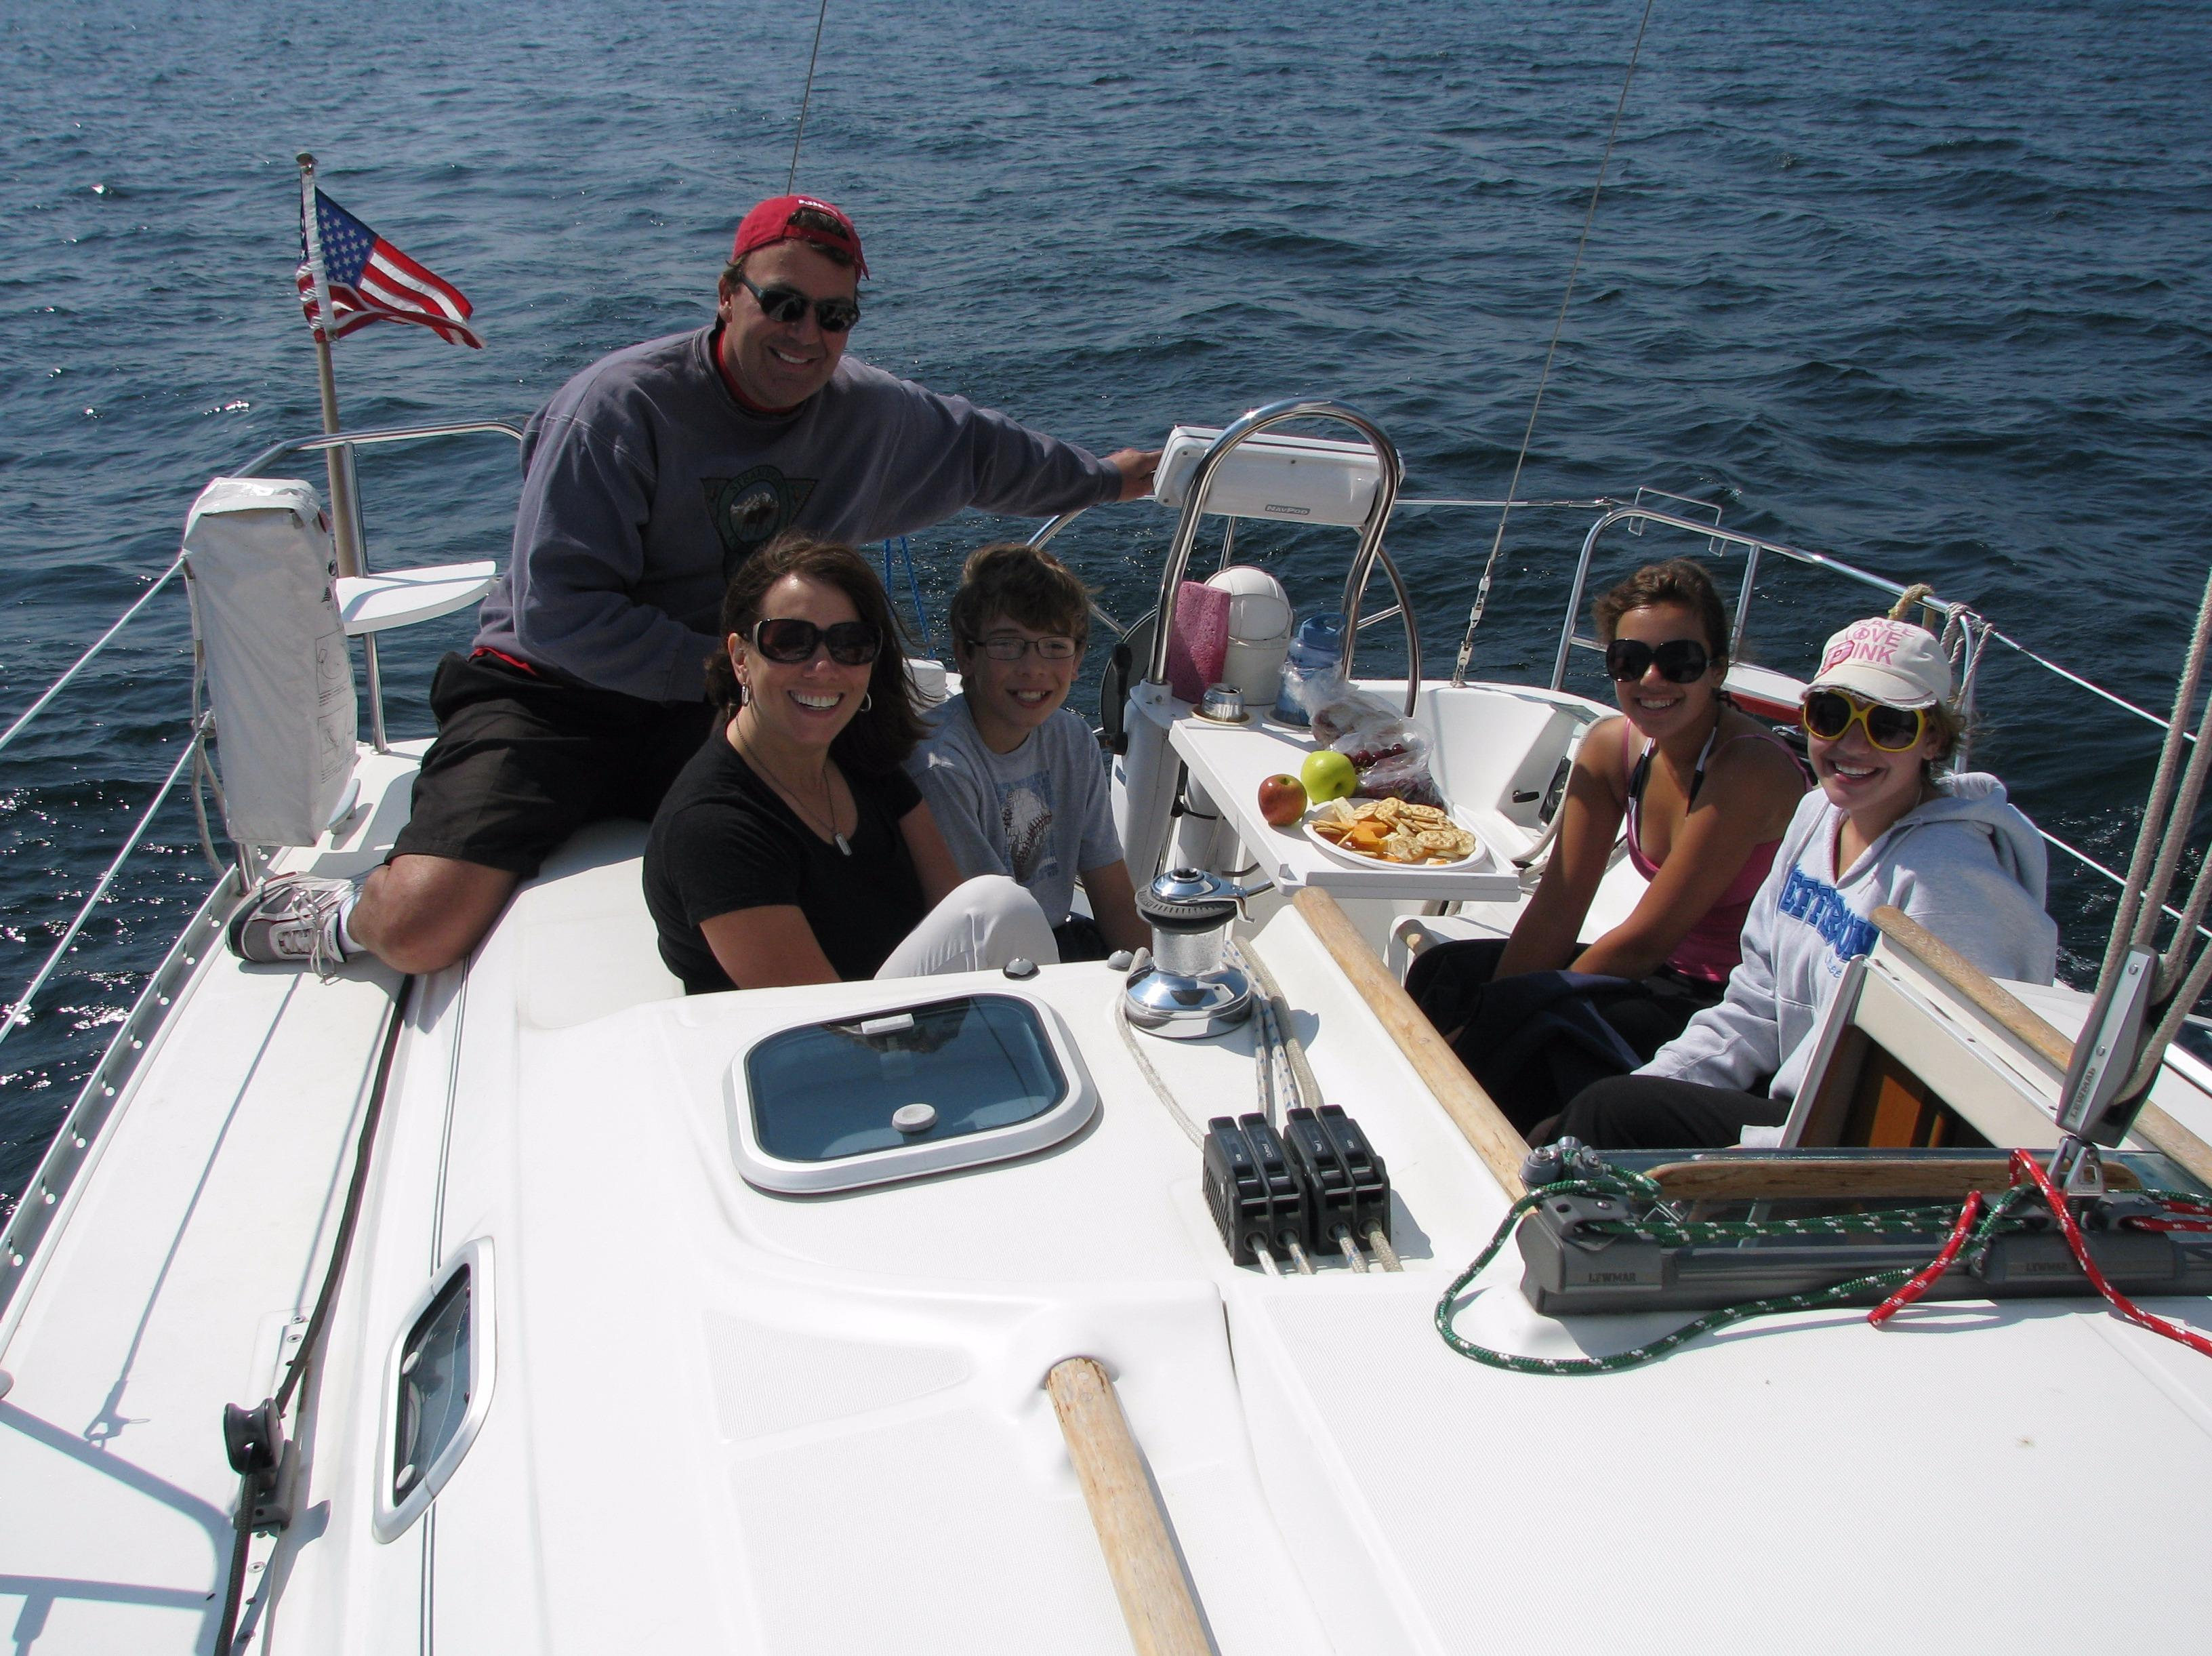 Carriage house charters llc duluth minnesota for Charter fishing duluth mn